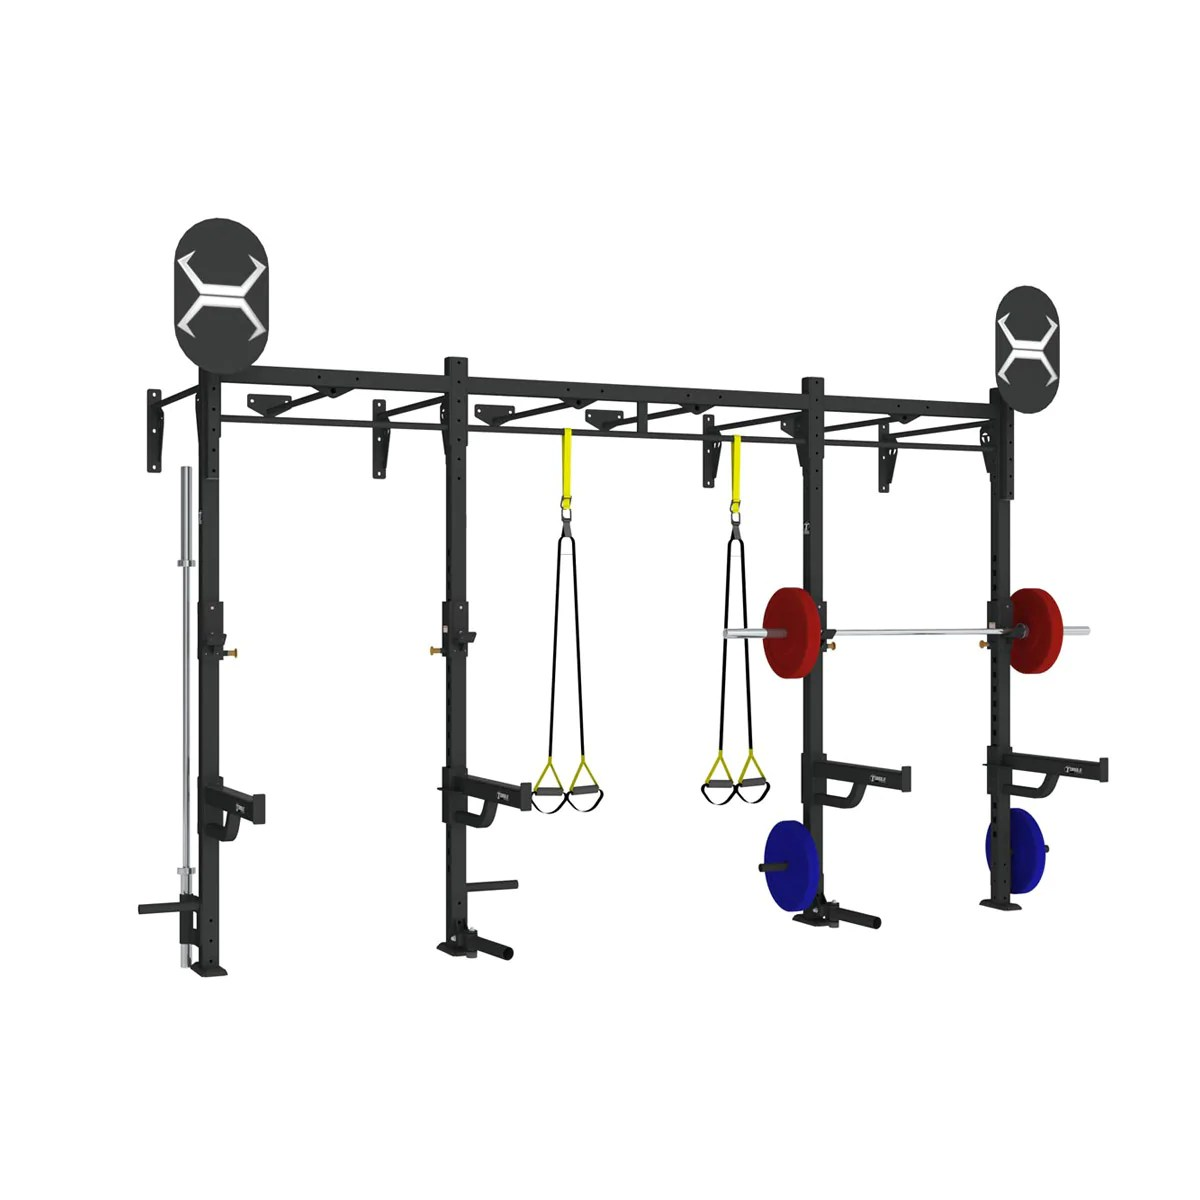 Monkey Bar 14 X 4 Monkey Bar Wall Mount X1 Package